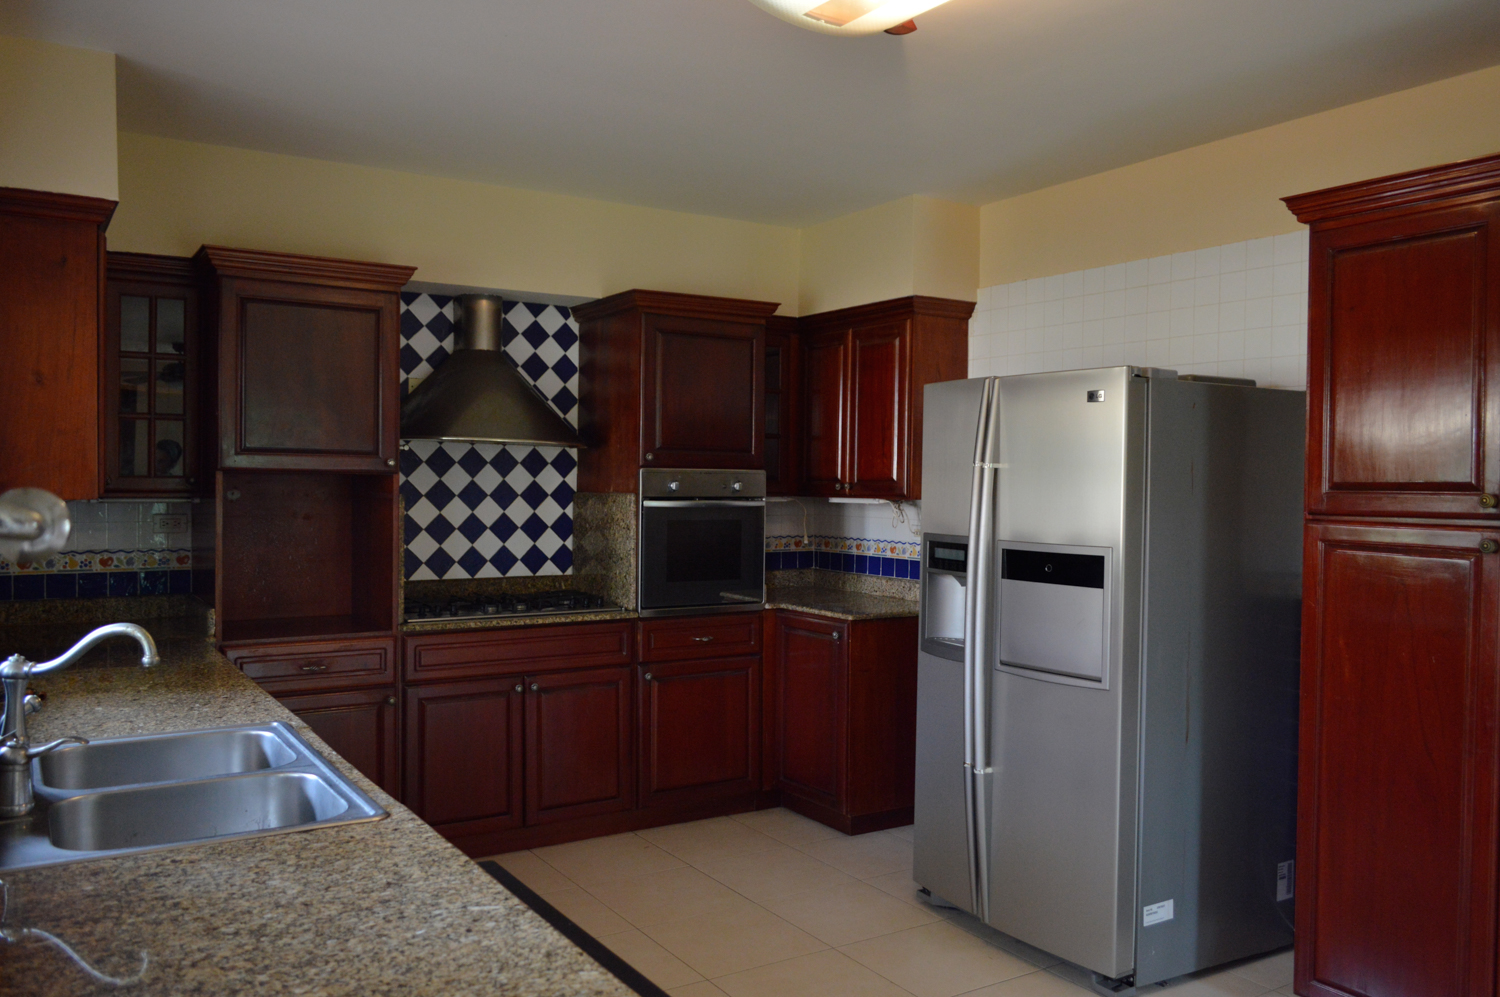 Clayton-Panama-property-panamaequitybest-price-three-bedroom-home-camino-de-cruces-2-6.jpg